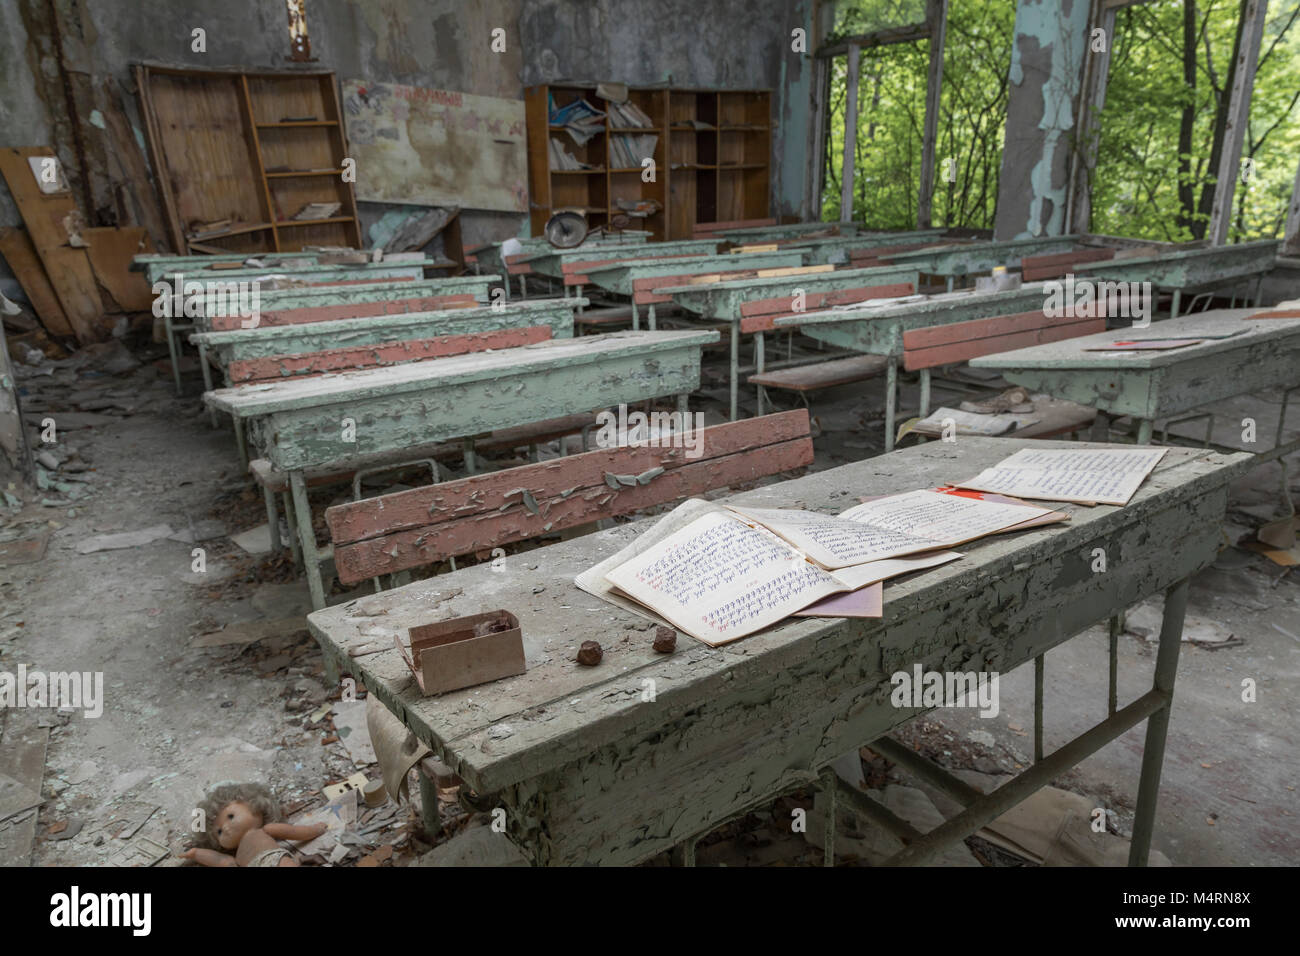 An abandoned class room in the town of Pripyat, Chernobyl, Ukraine - Stock Image